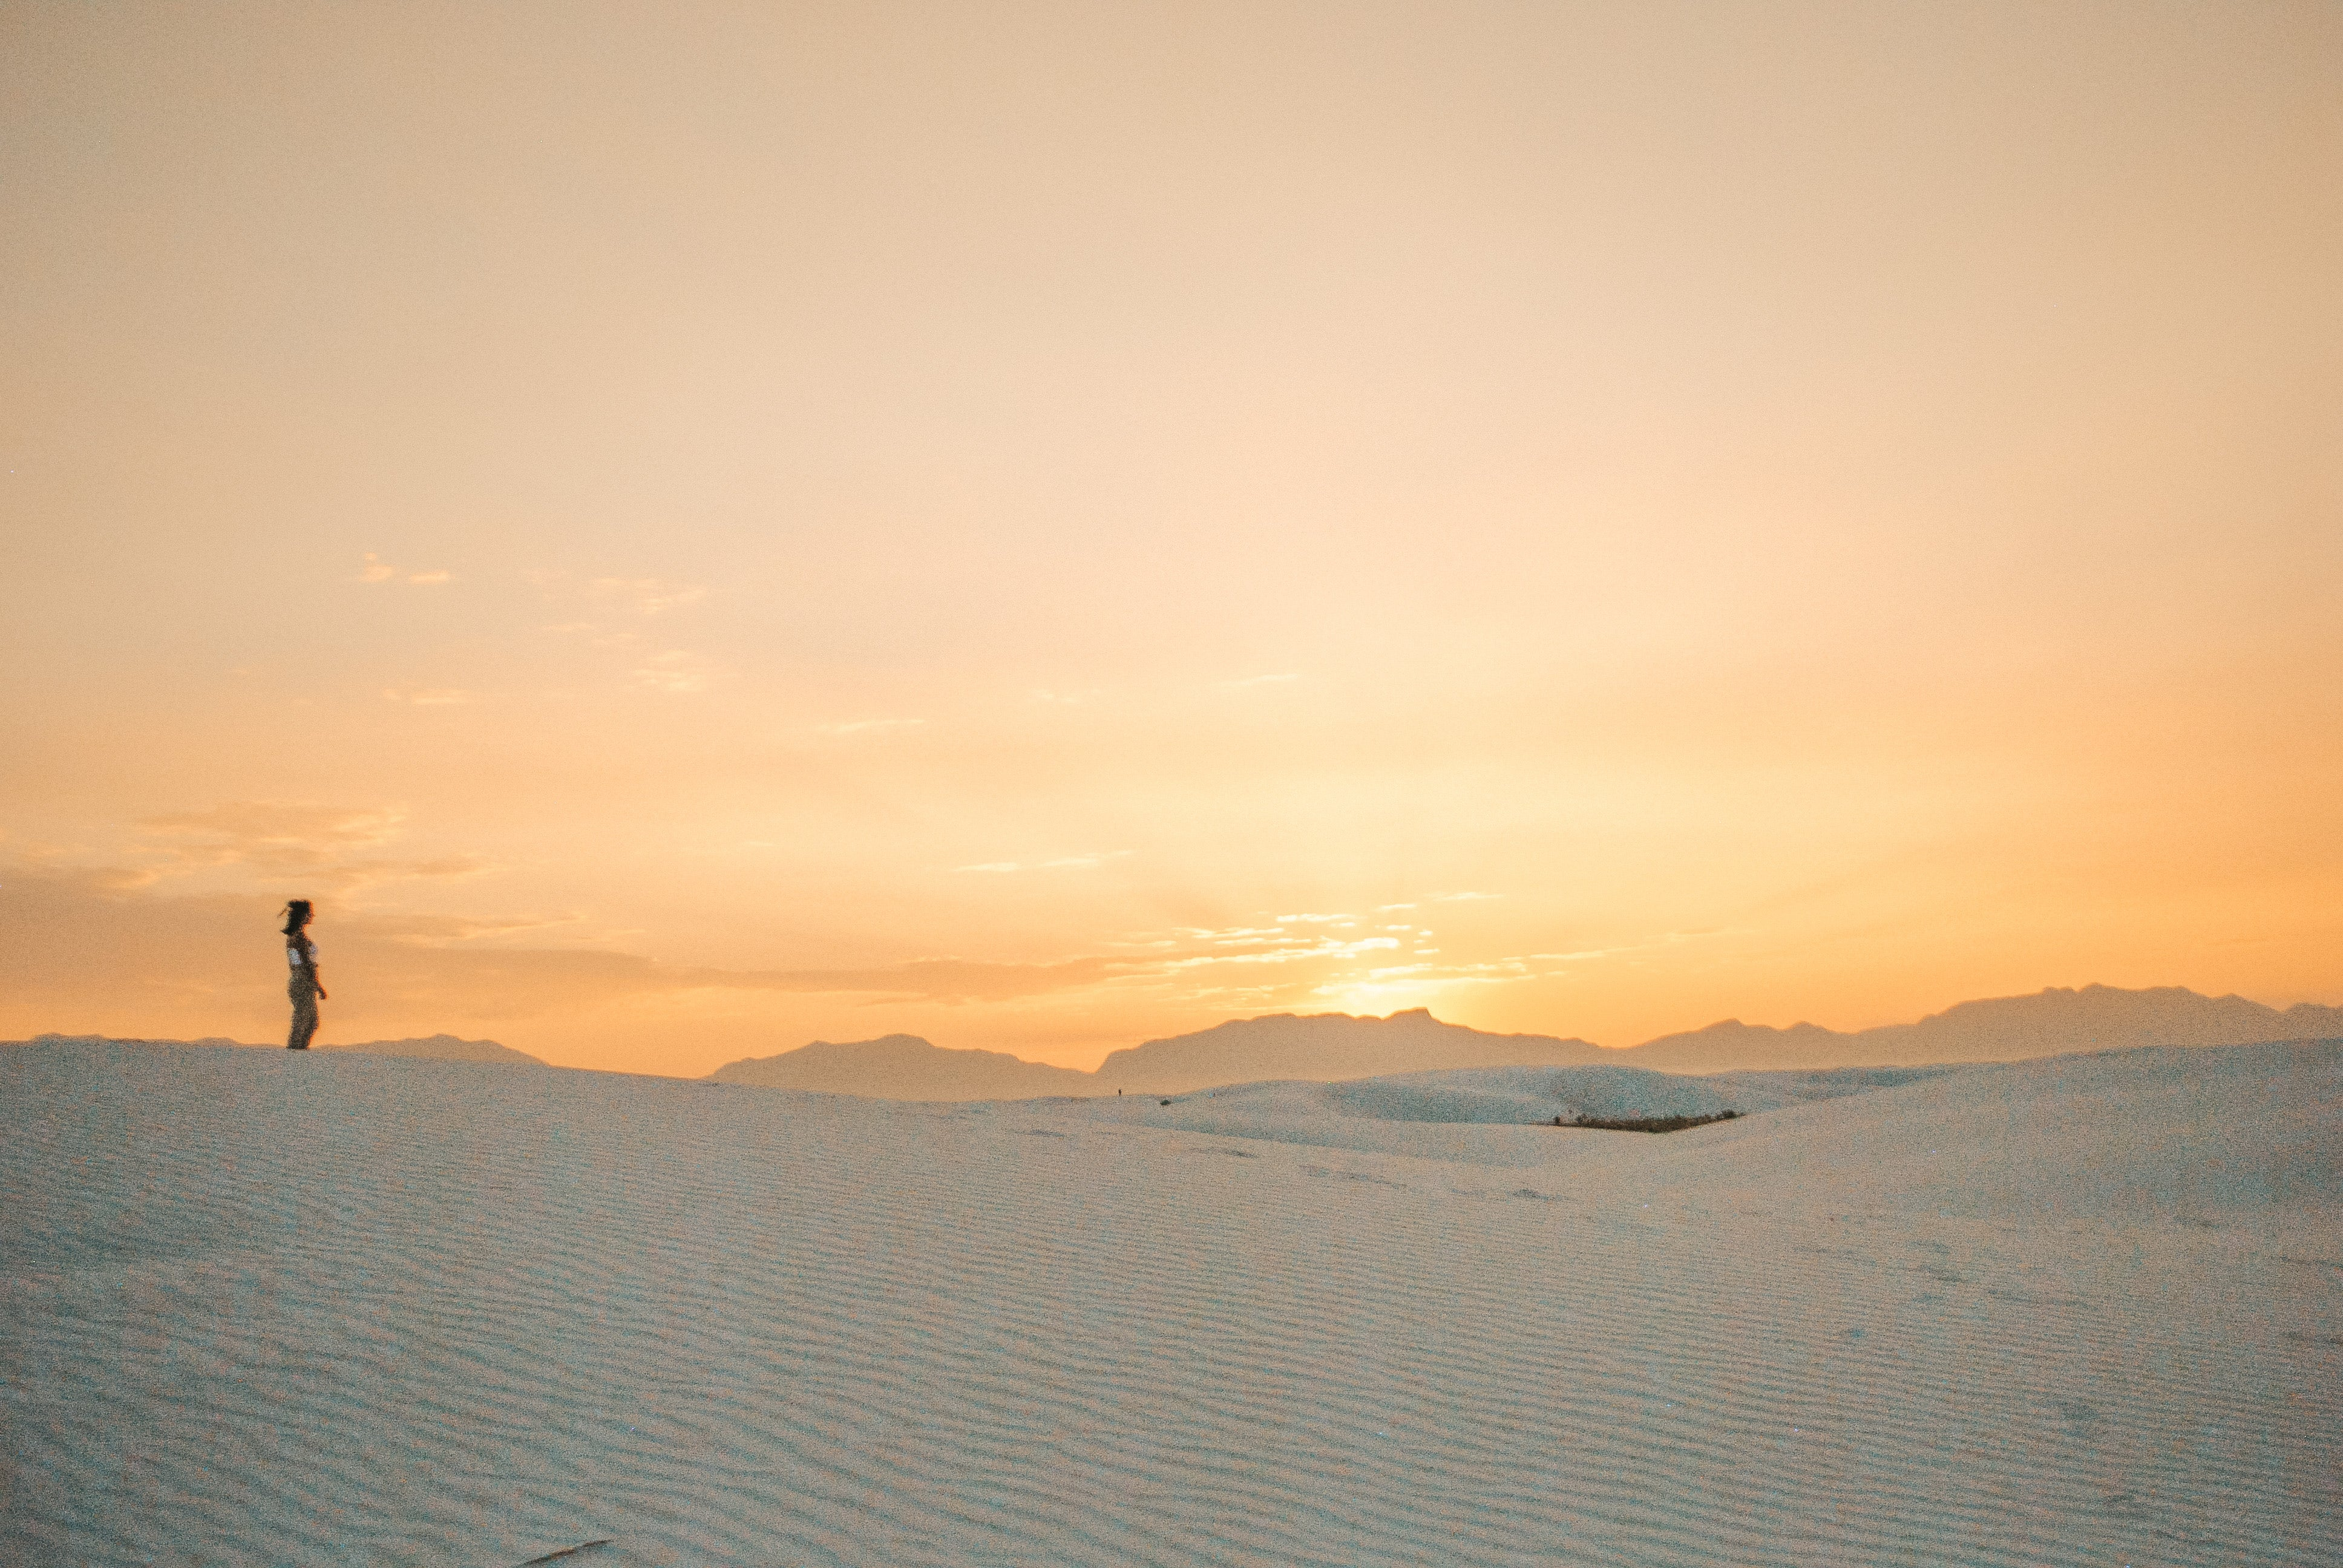 taking in the view at white sands